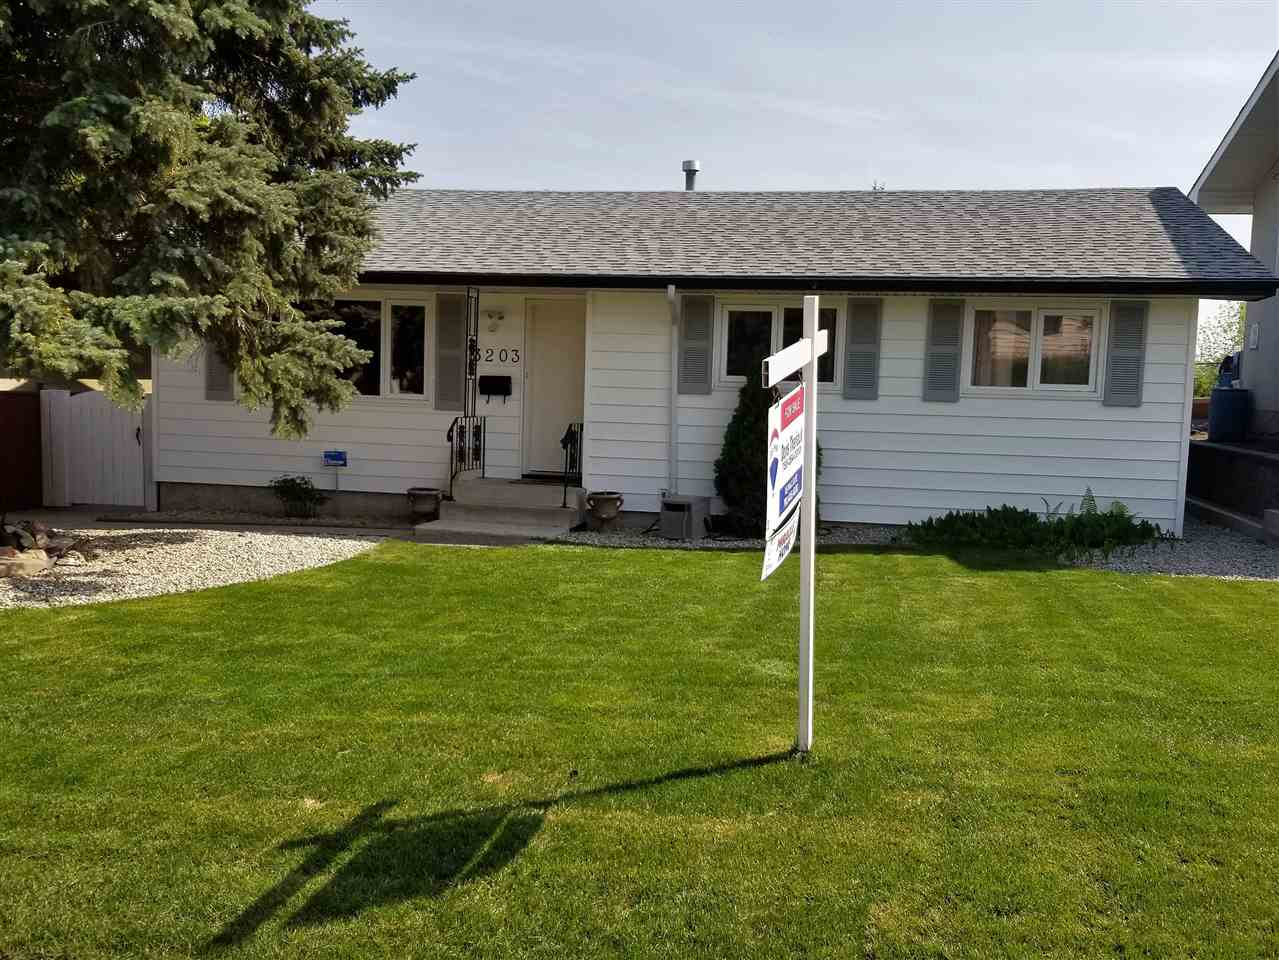 MLS® listing #E4156892 for sale located at 3203 104 Avenue